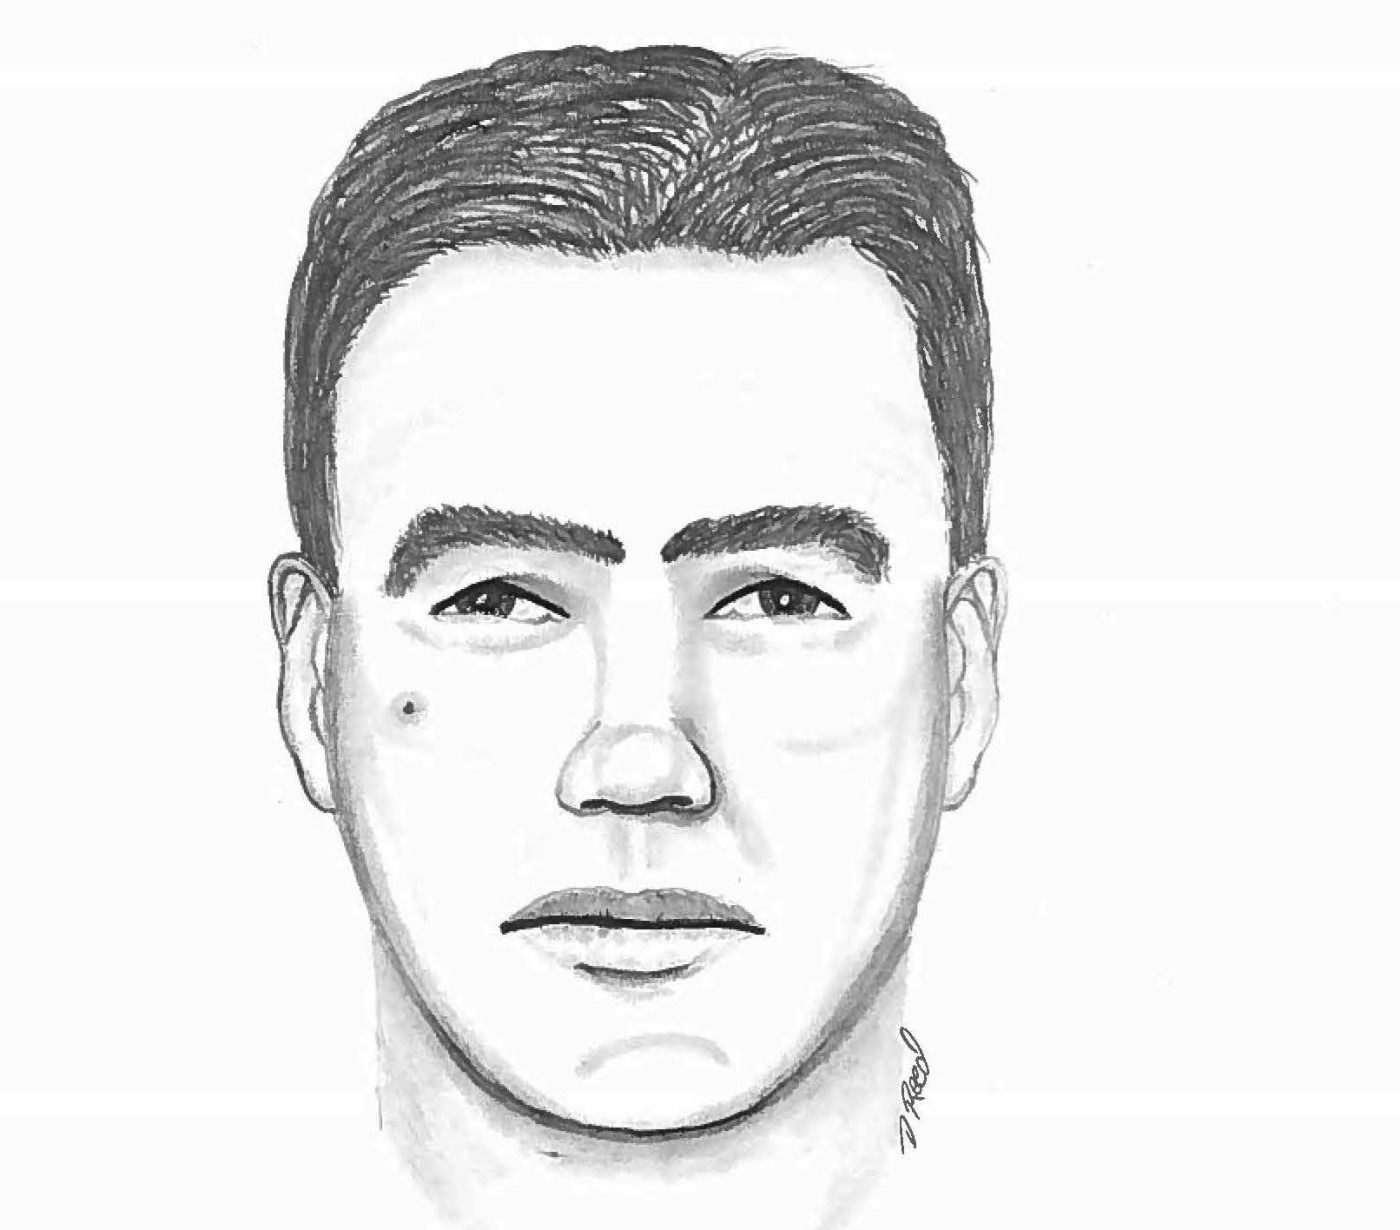 Gorham police release sketch of assault and burglary